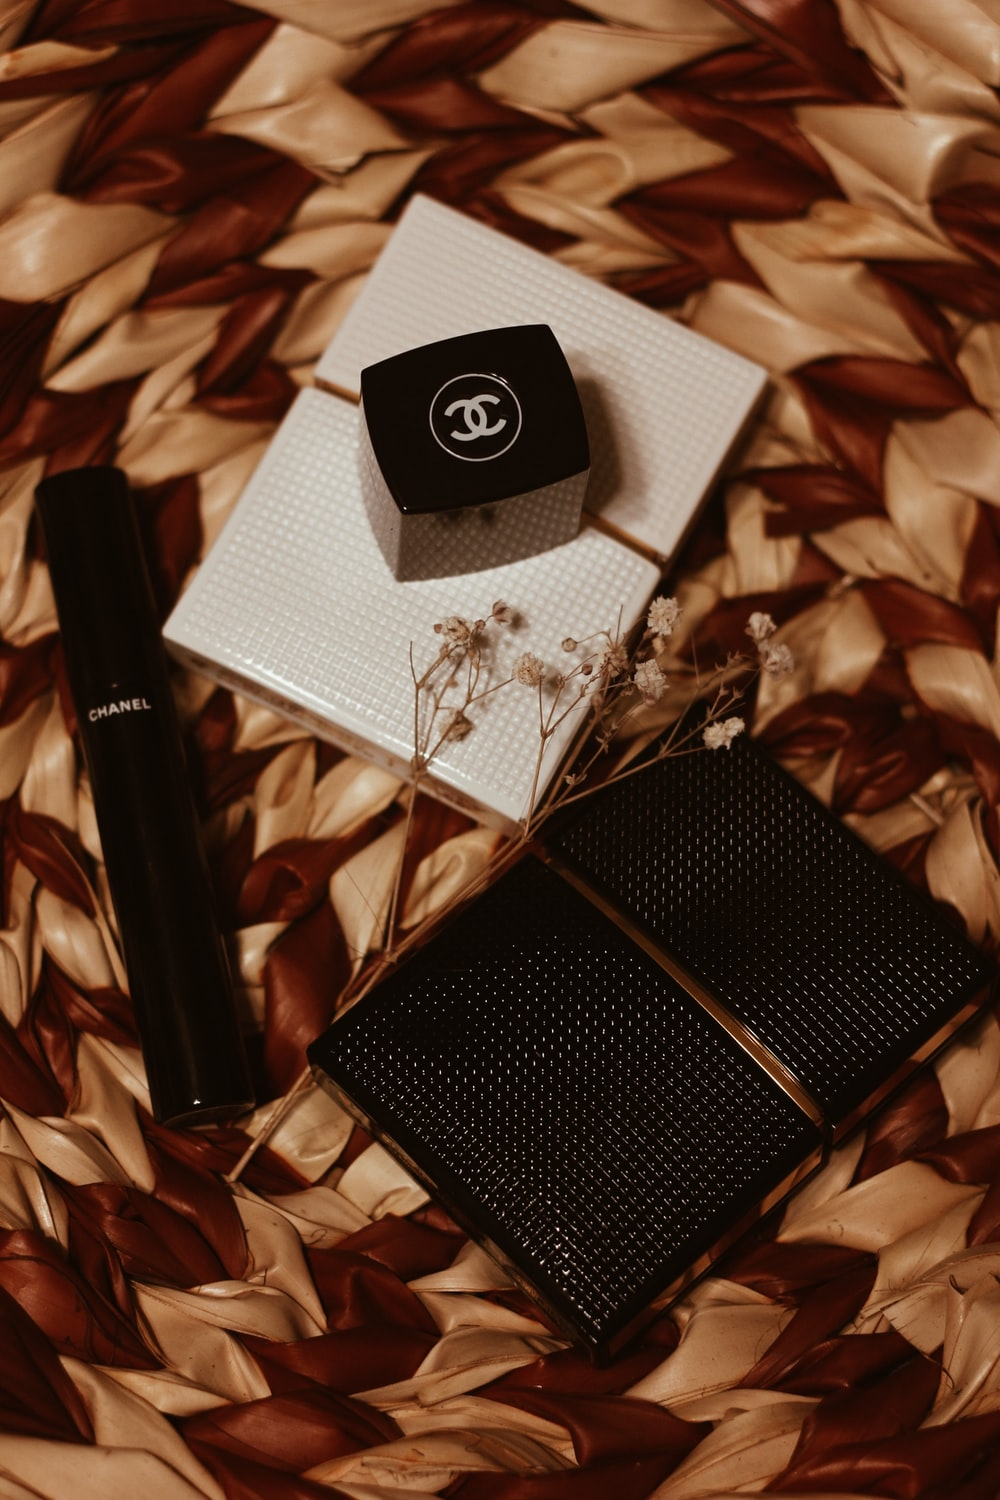 black and white box on white and brown textile